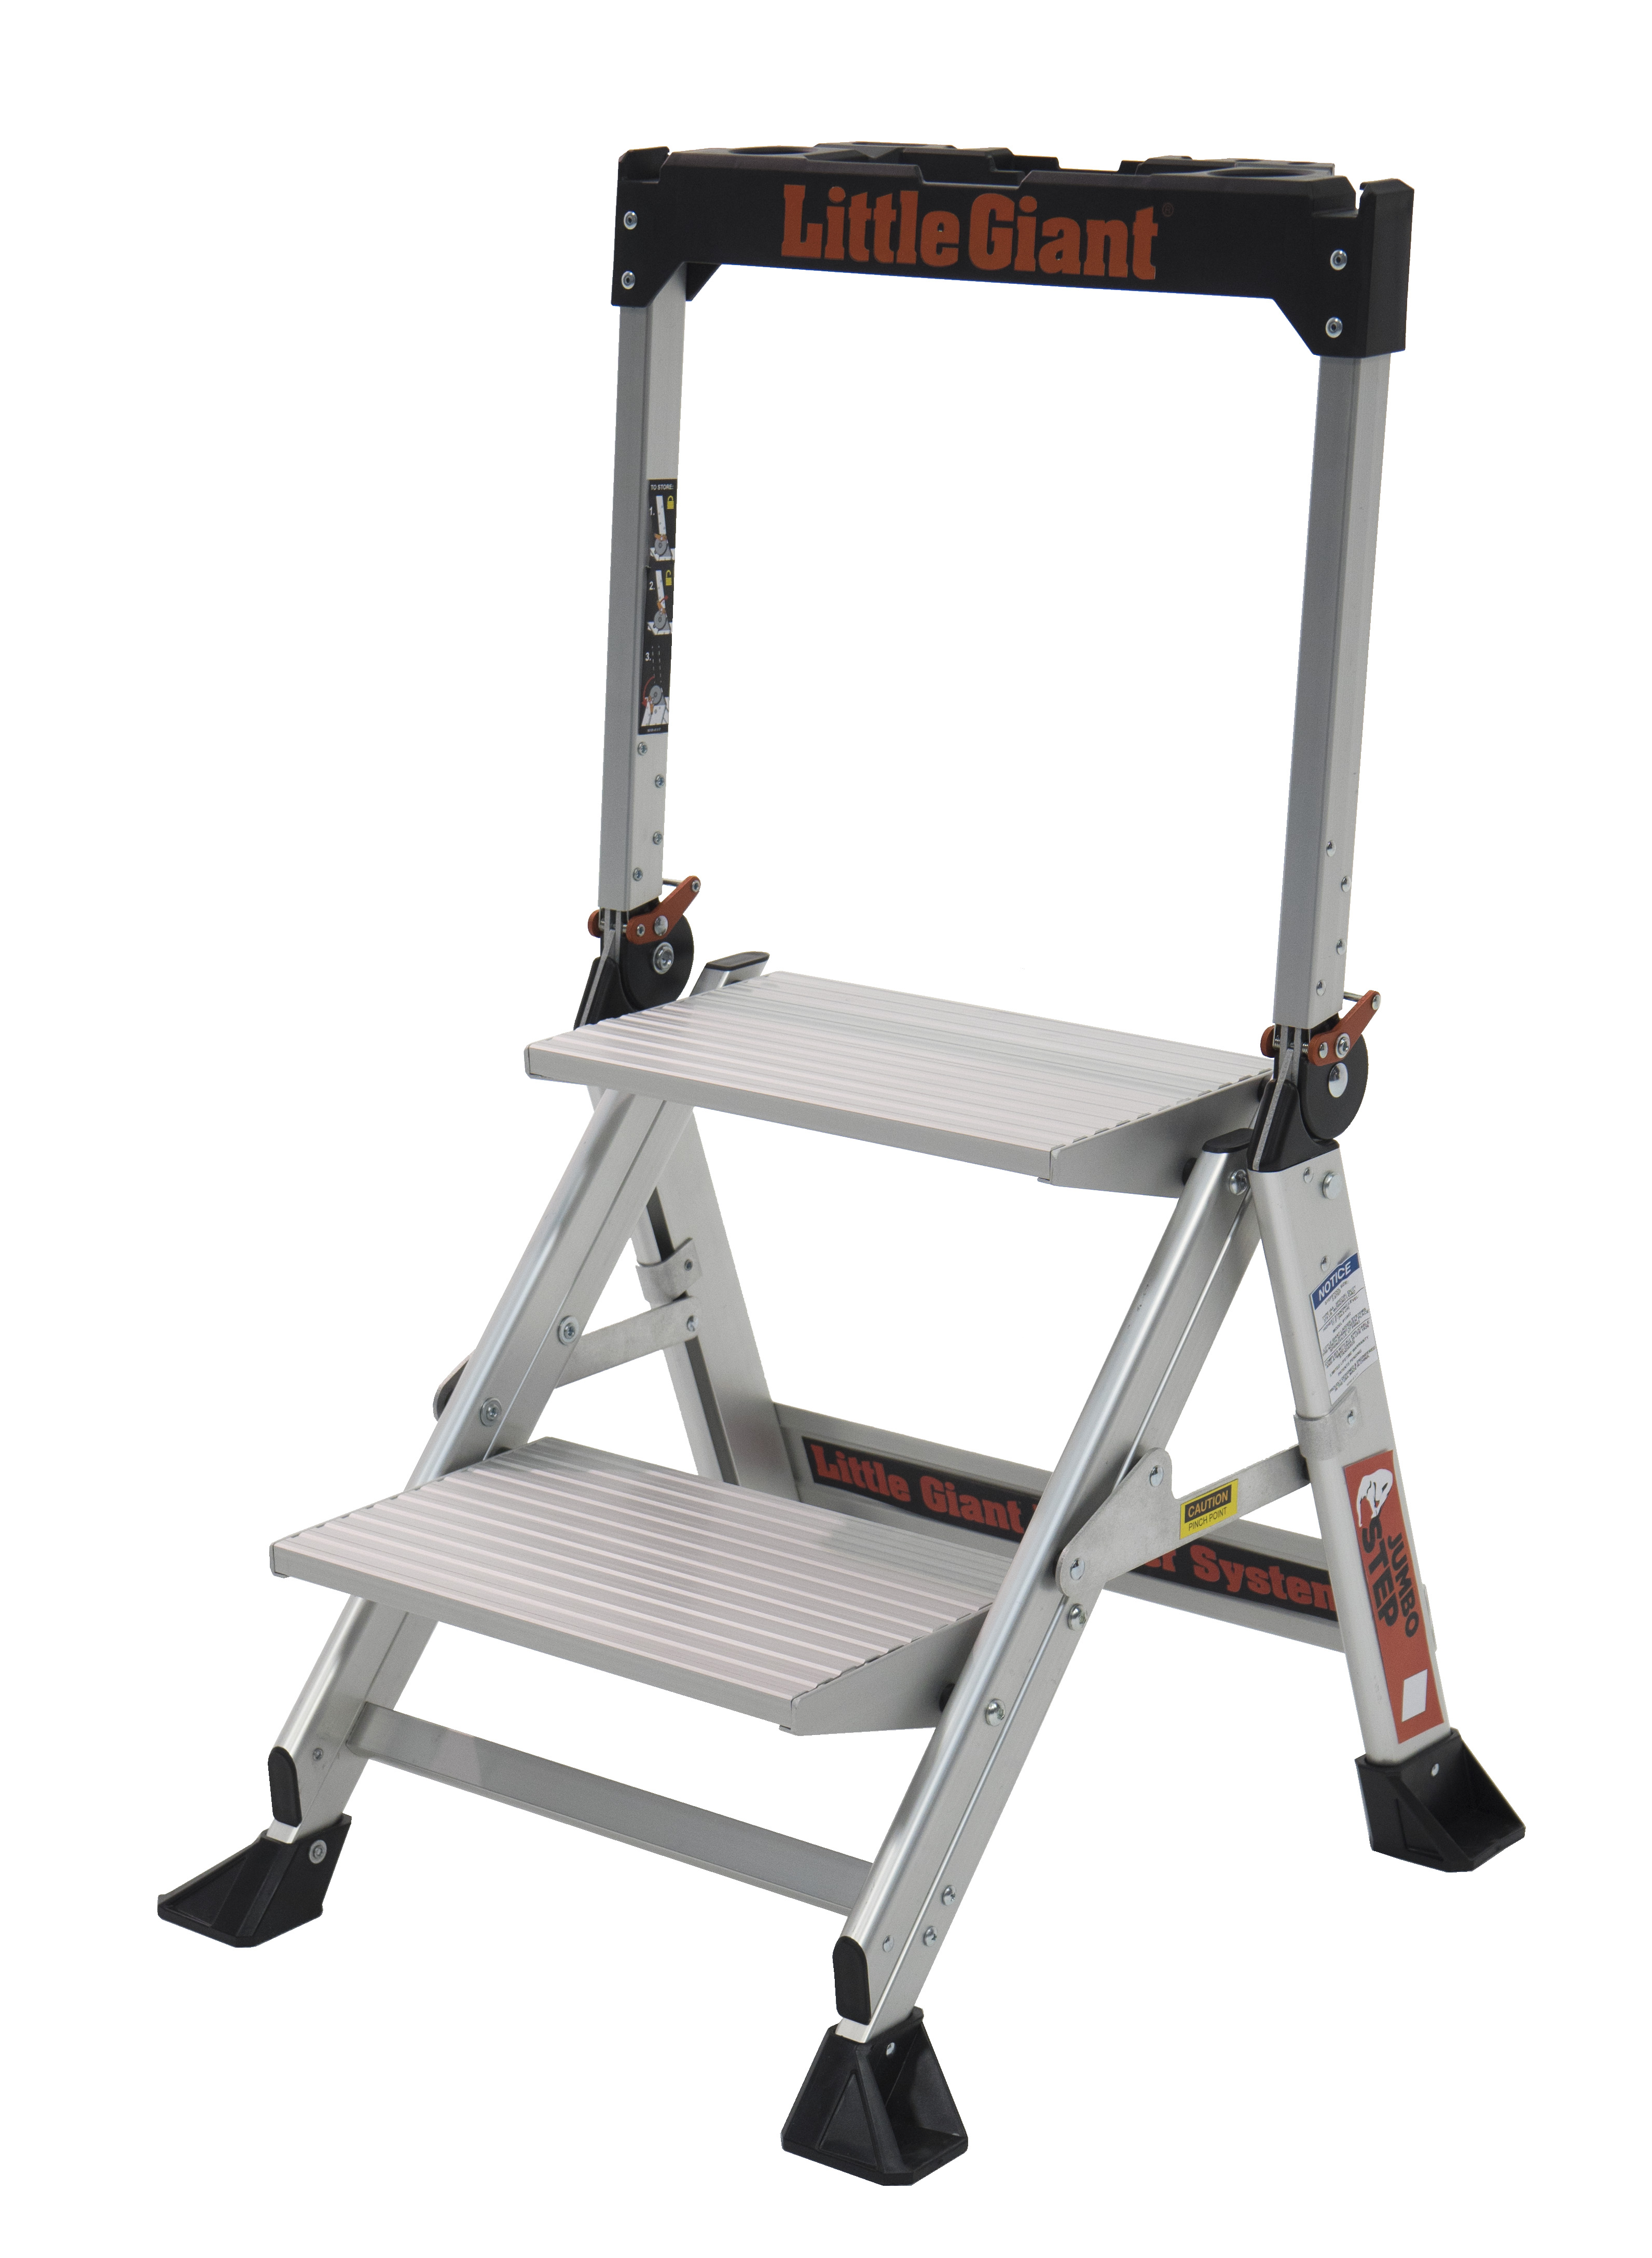 Little Giant Jumbo Step, Model 2 step, 375 lbs capacity rated, aluminum stepstool by Wing Enterprises, Inc.